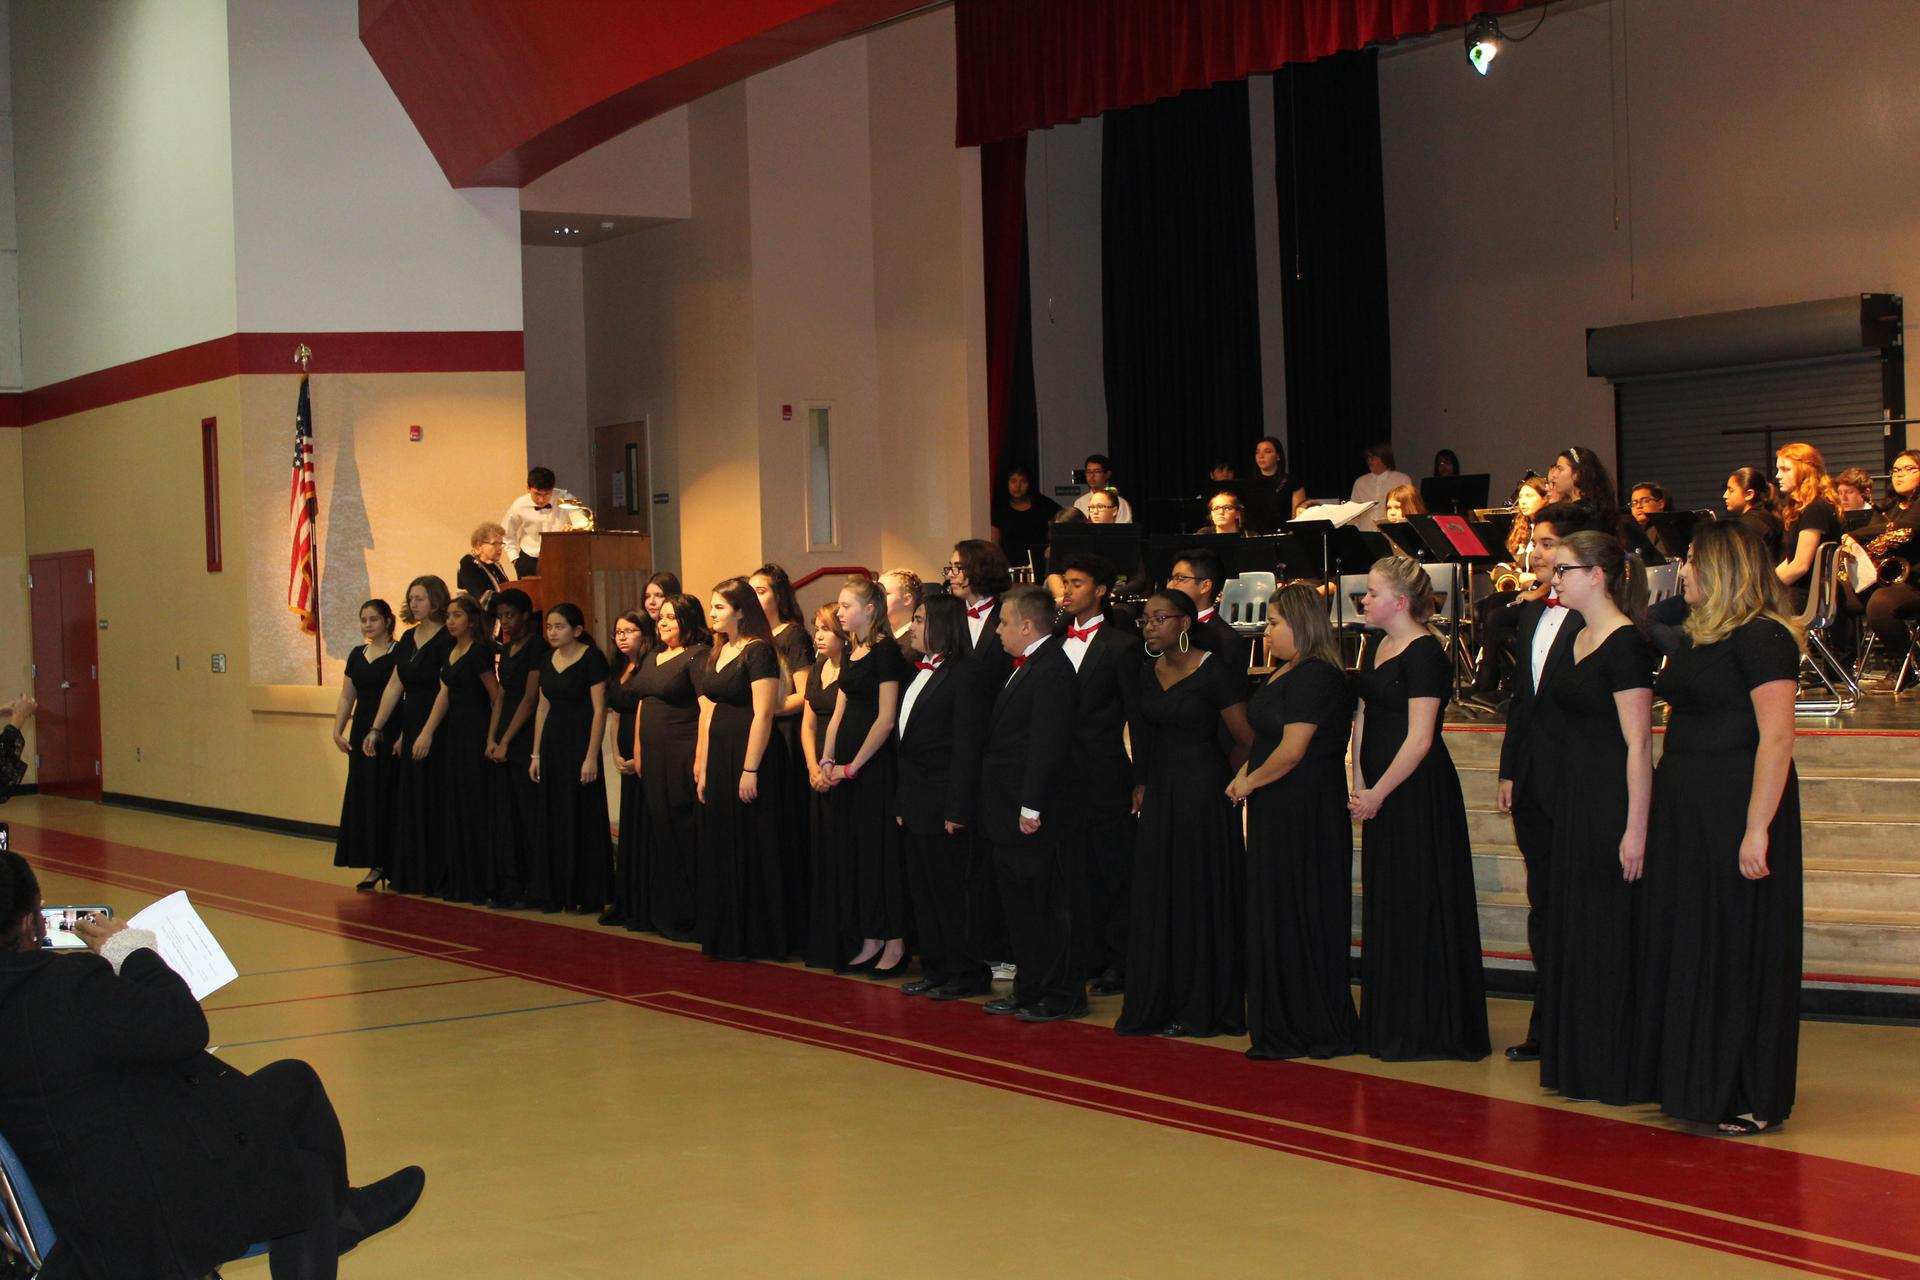 The CUHS Choir stands in front of the stage.